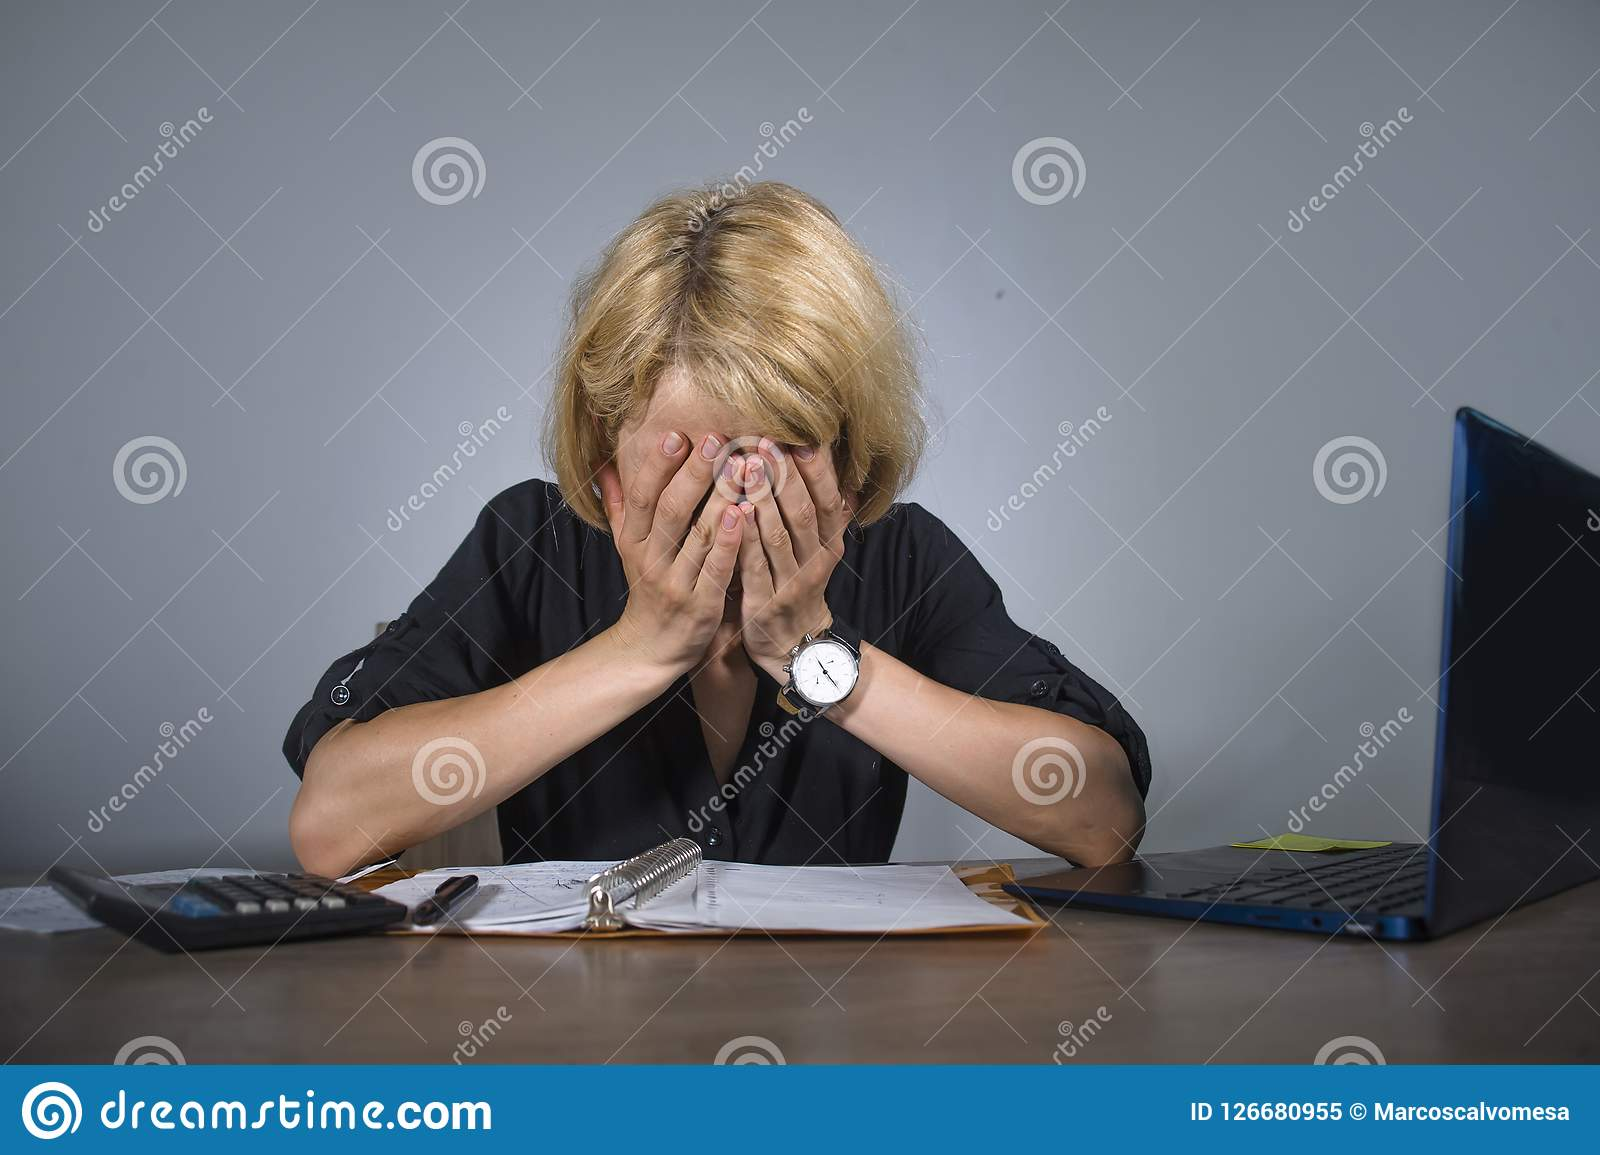 Young frustrated and stressed business woman crying sad at office desk working with laptop computer overwhelmed by paperwork workl